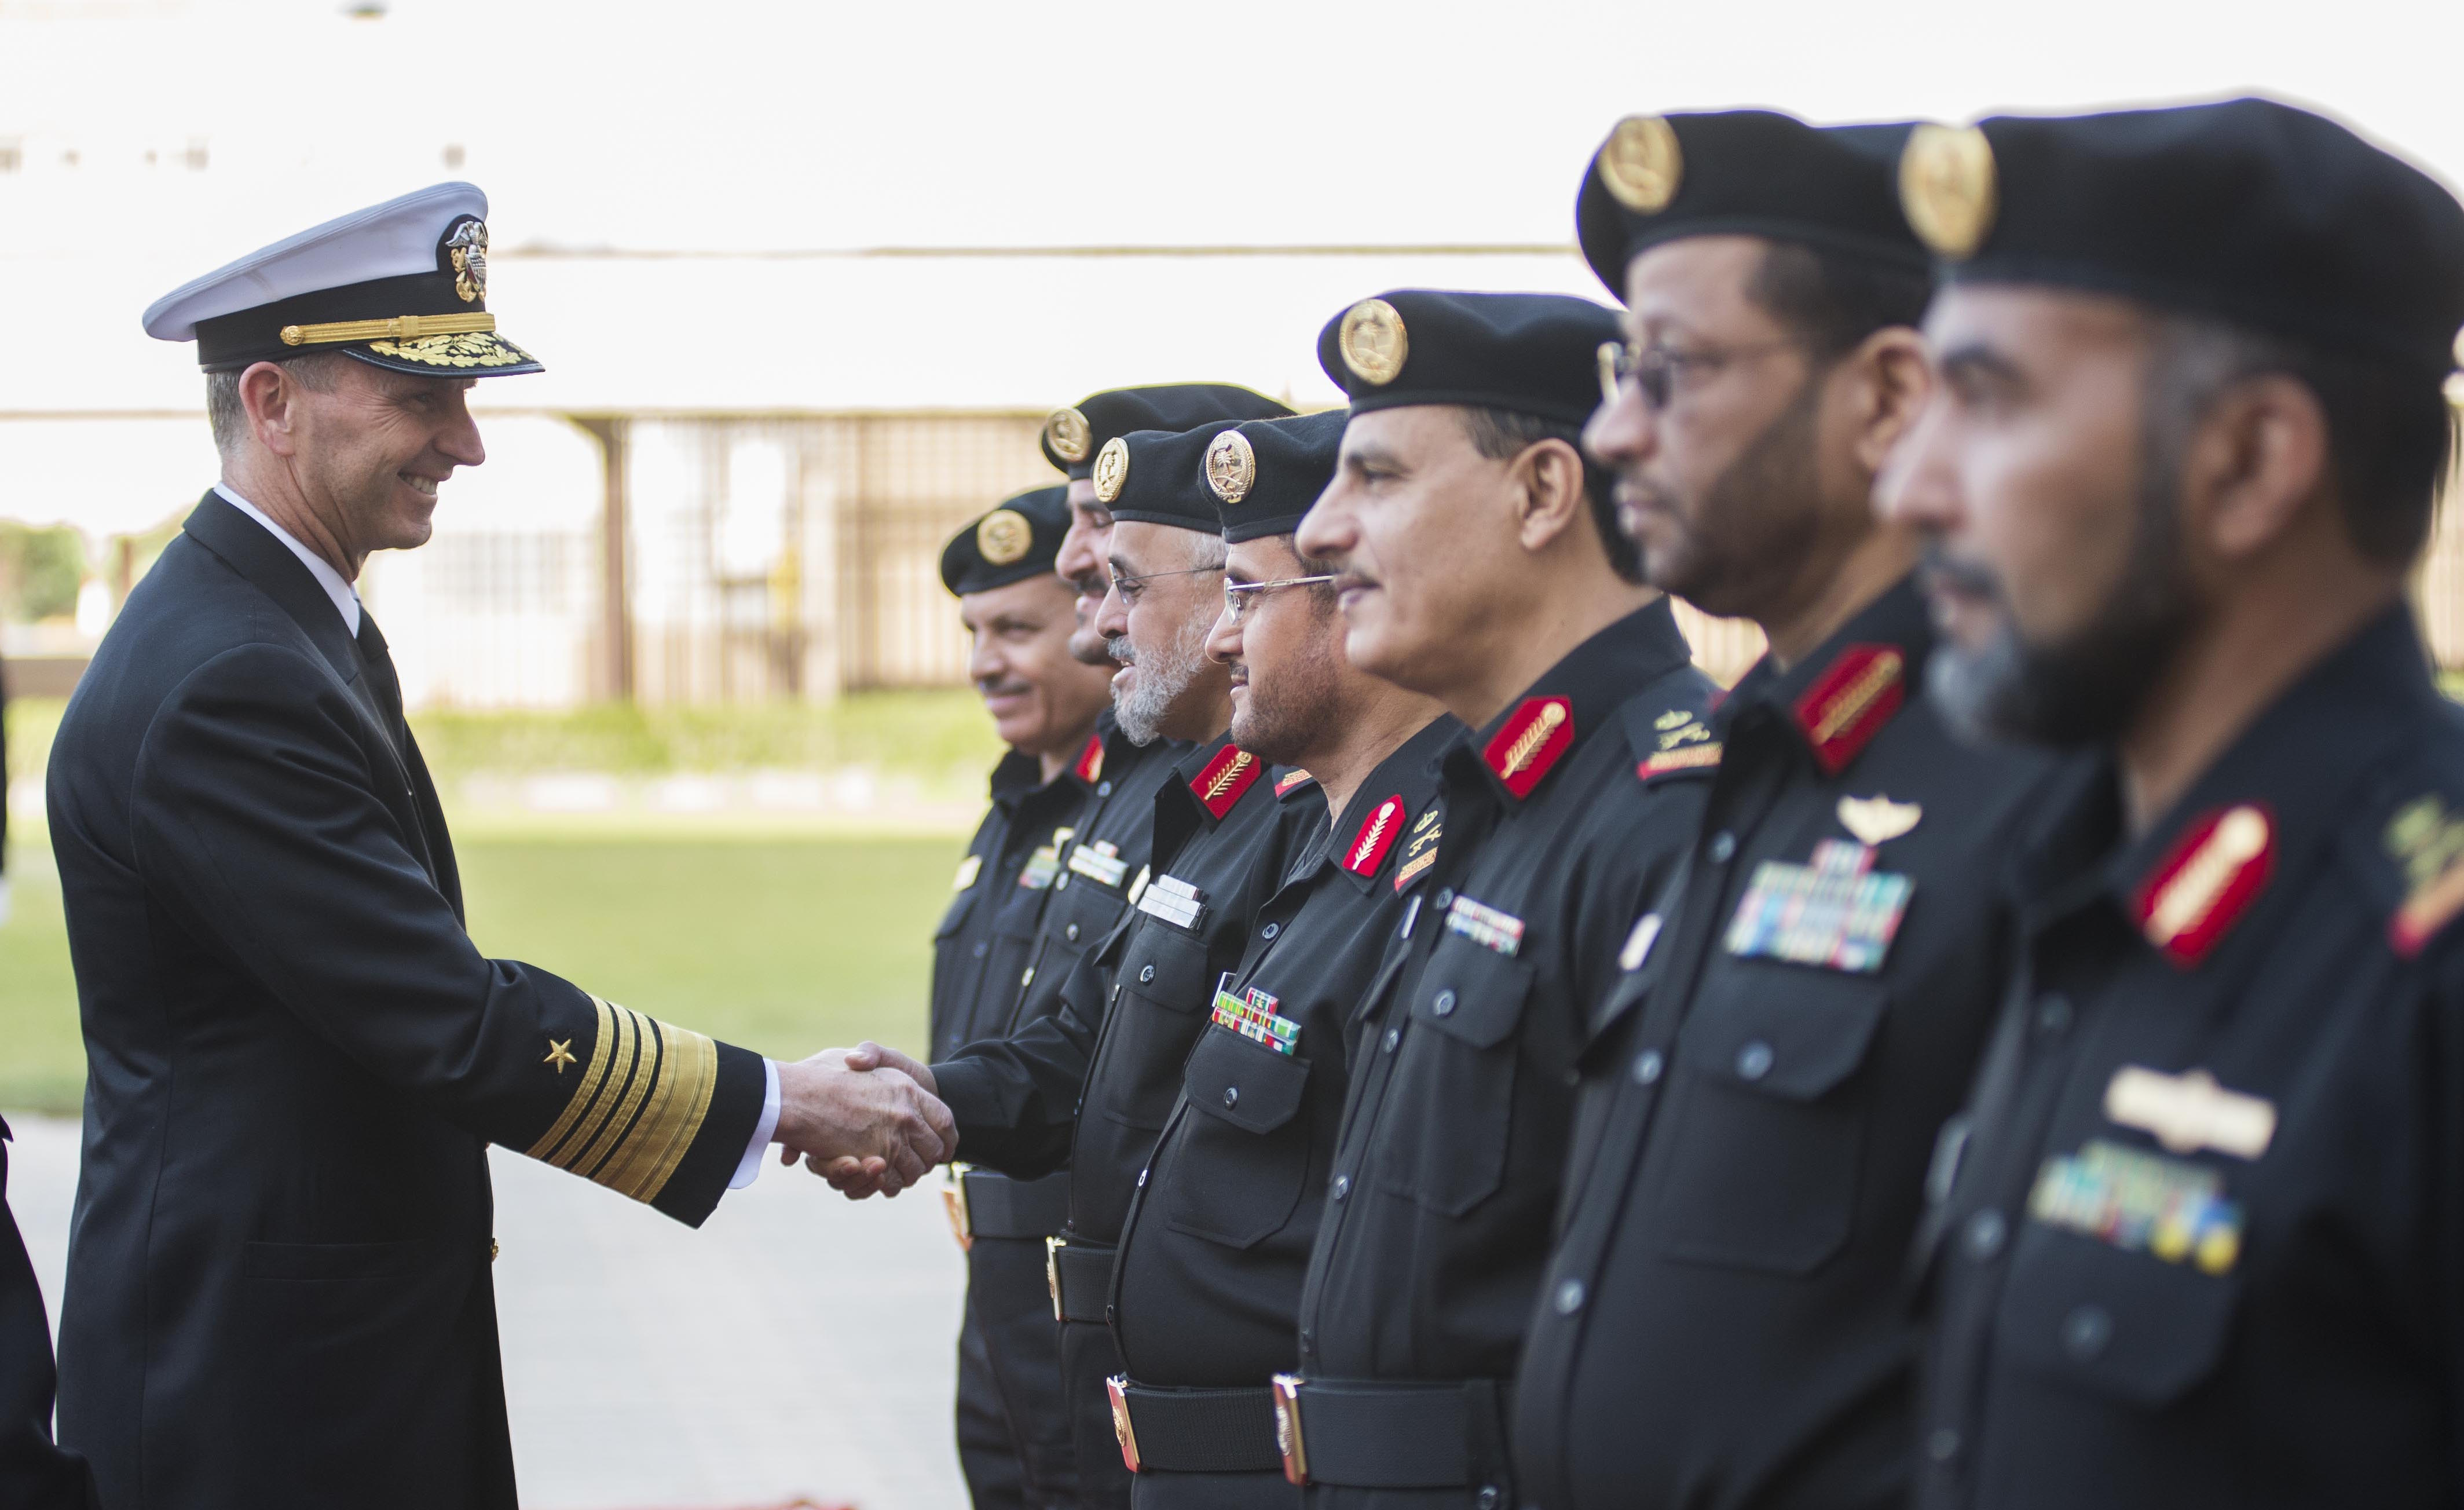 Chief of Naval Operations (CNO) Adm. Jonathan Greenert meets with heads of the Royal Saudi Naval Forces (RSNF) in 2013. US Navy Photo